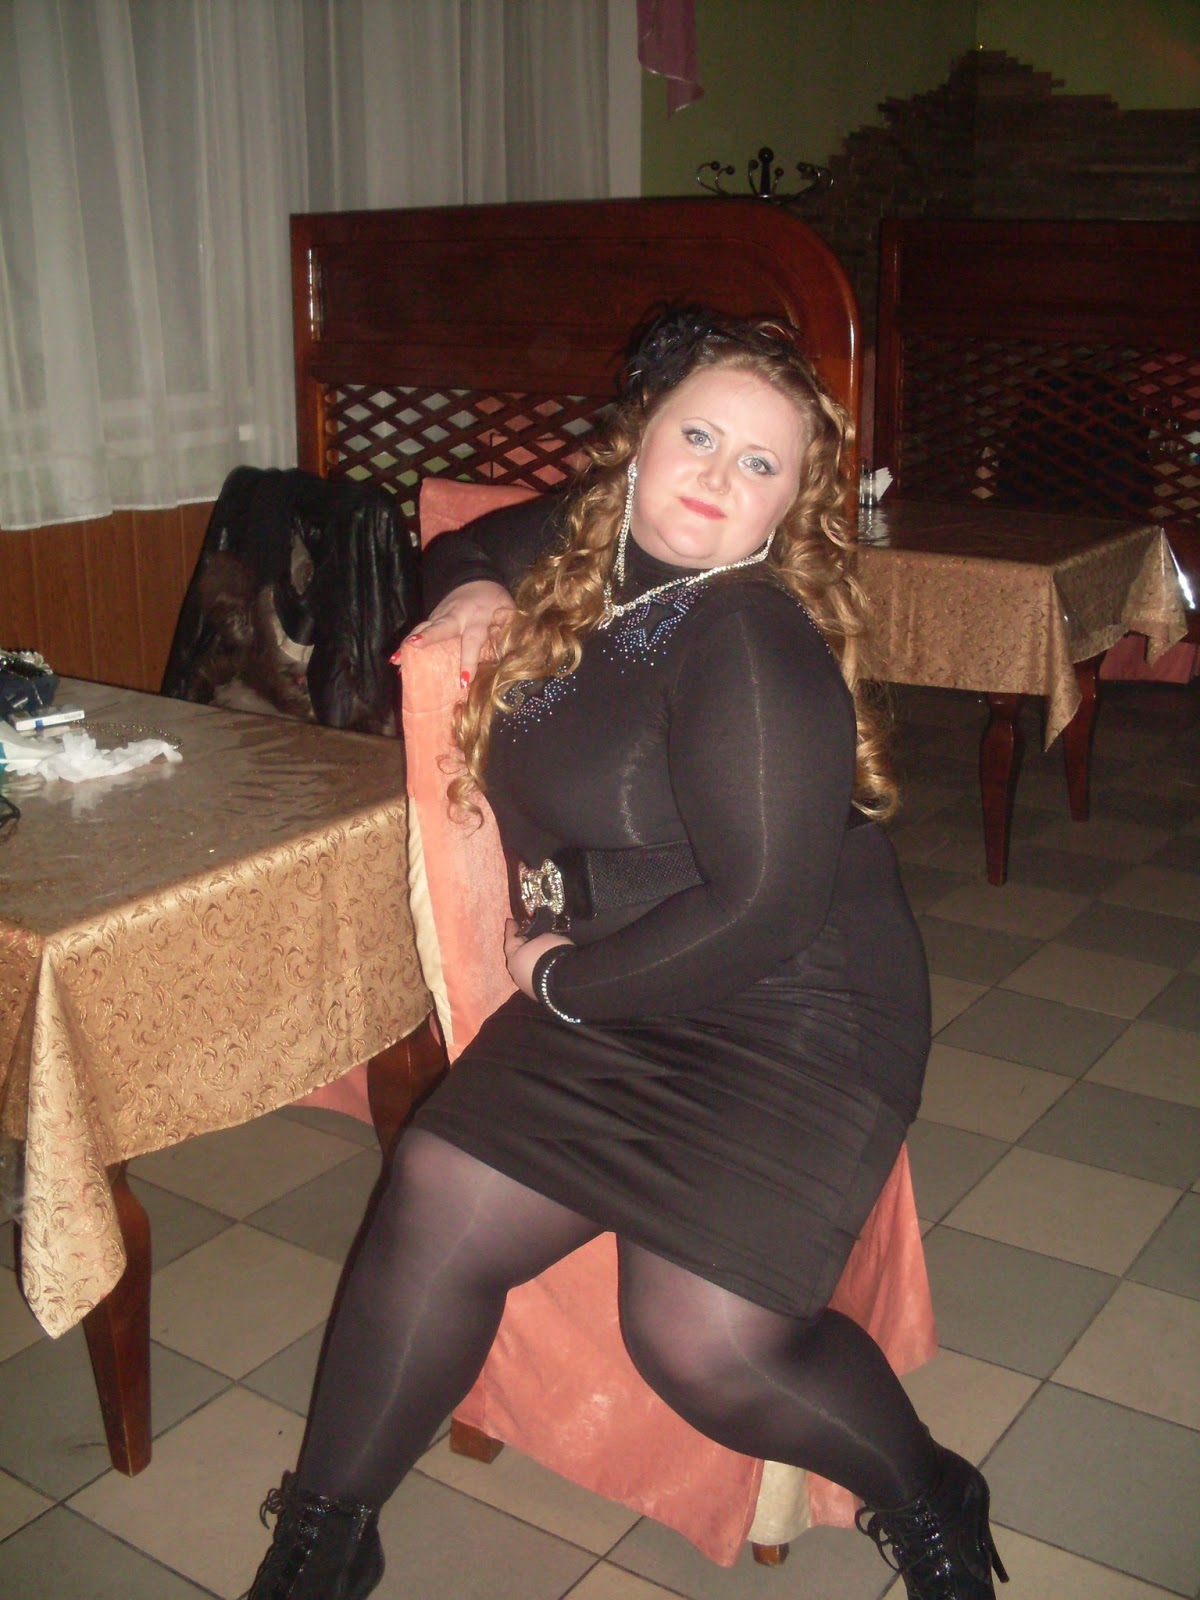 interracial singles dating site